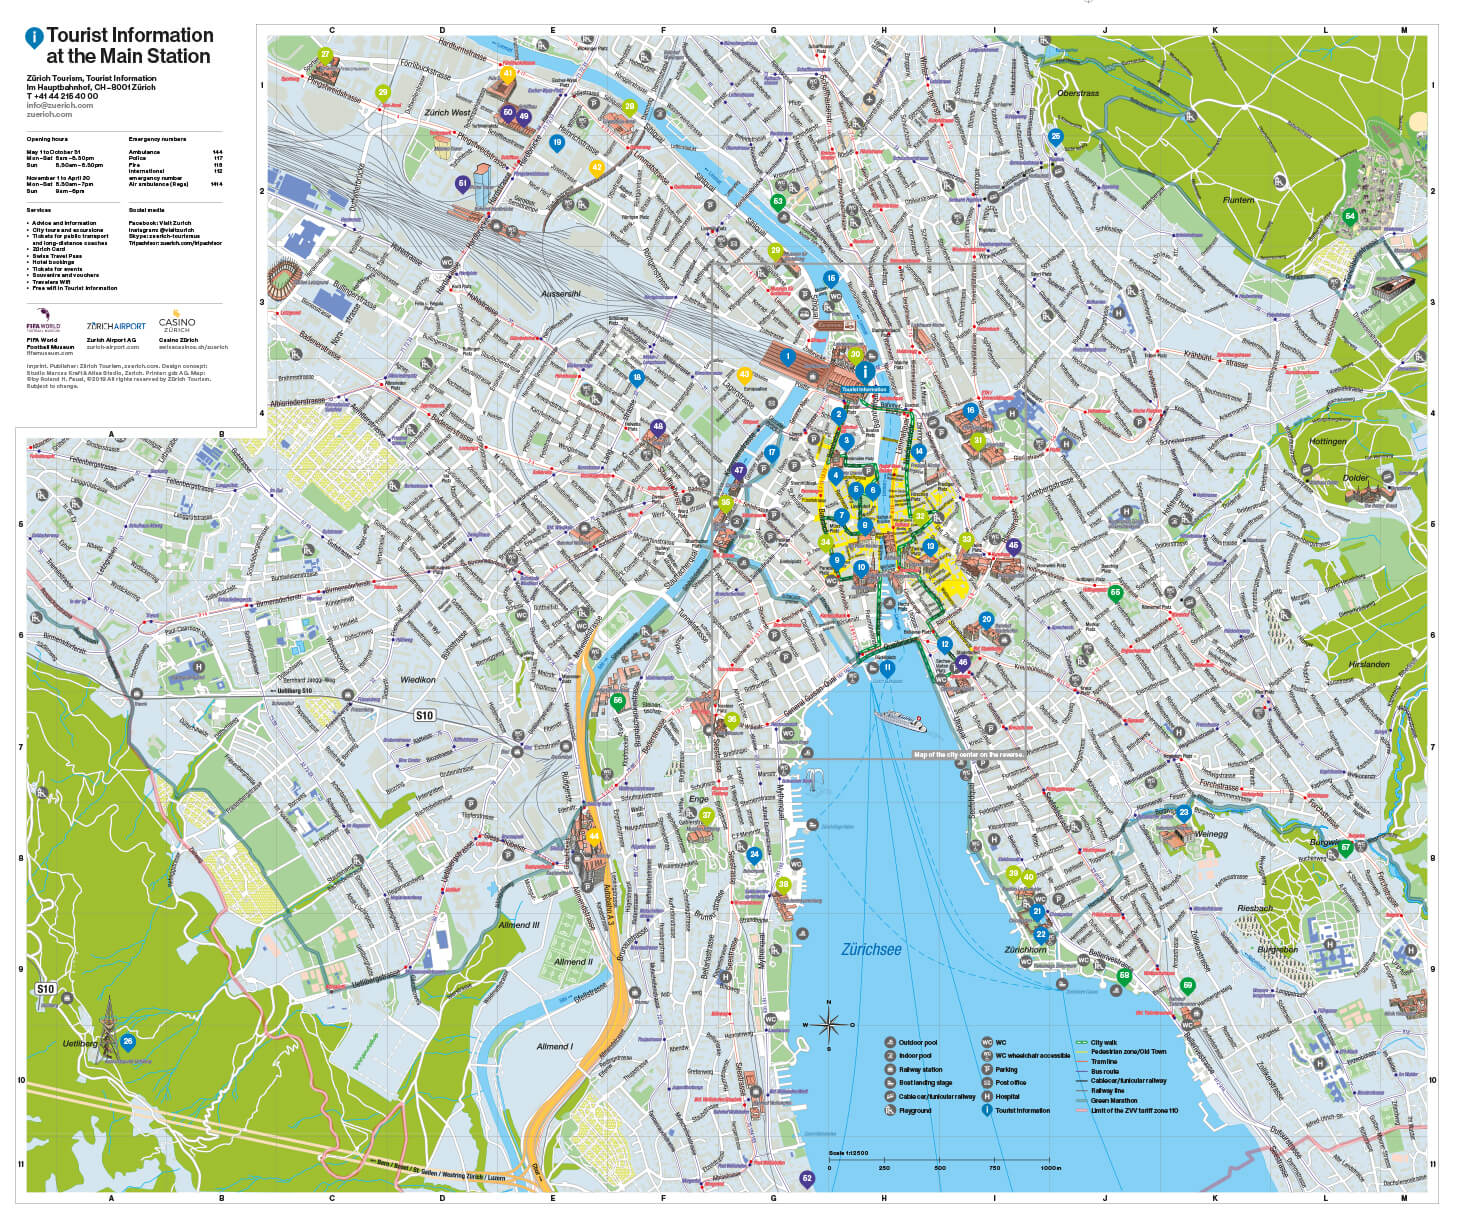 Zurich Tourism Map 2019